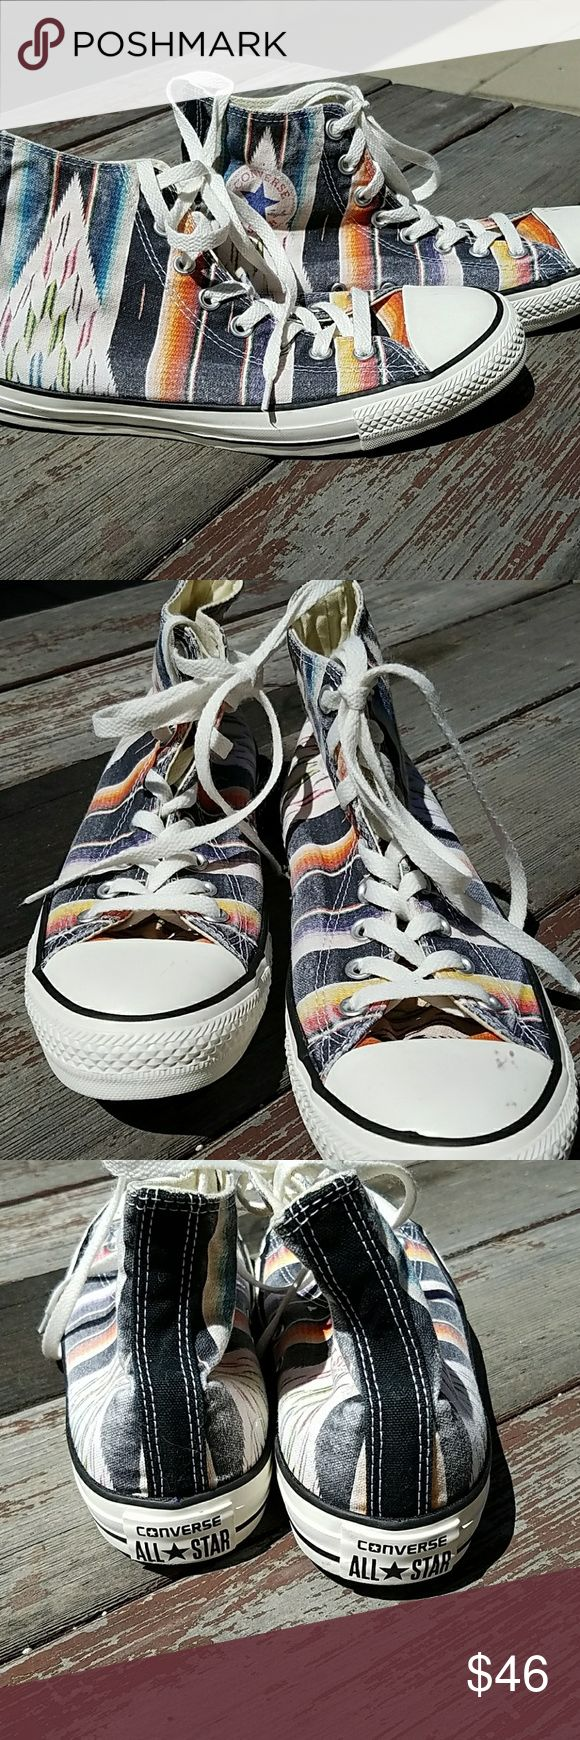 NWOT Converse All Star High Top Blanket Print Converse All Star High Top in an Indian Blanket Print.  These shoes are new and have never been worn, but there are scuff marks on the rubber which come off with a little more energy than I have. Converse Shoes Athletic Shoes